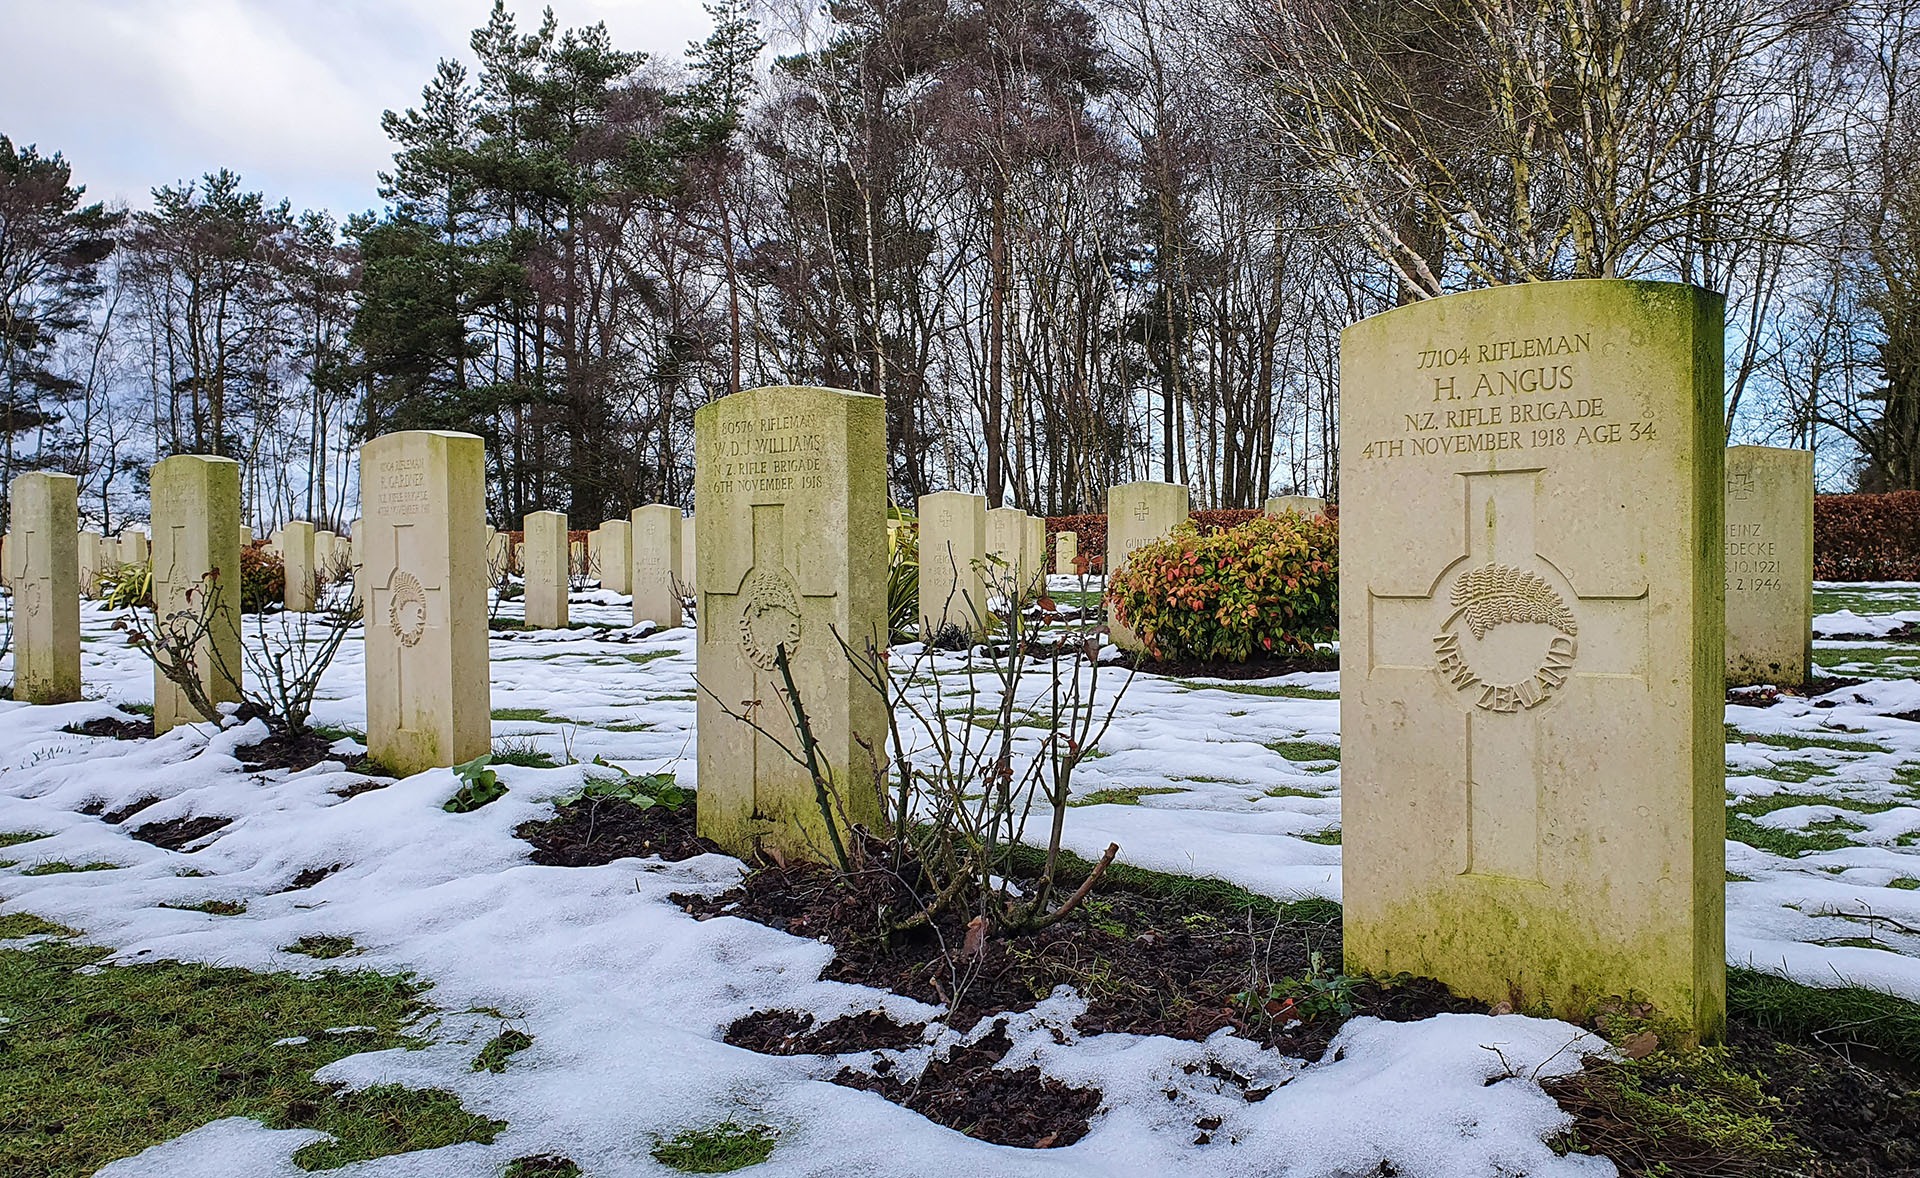 Soldiers from the New Zealand Rifle Brigade are buried at the Commonwealth War Graves Commission cemetery near Broadhurst Green